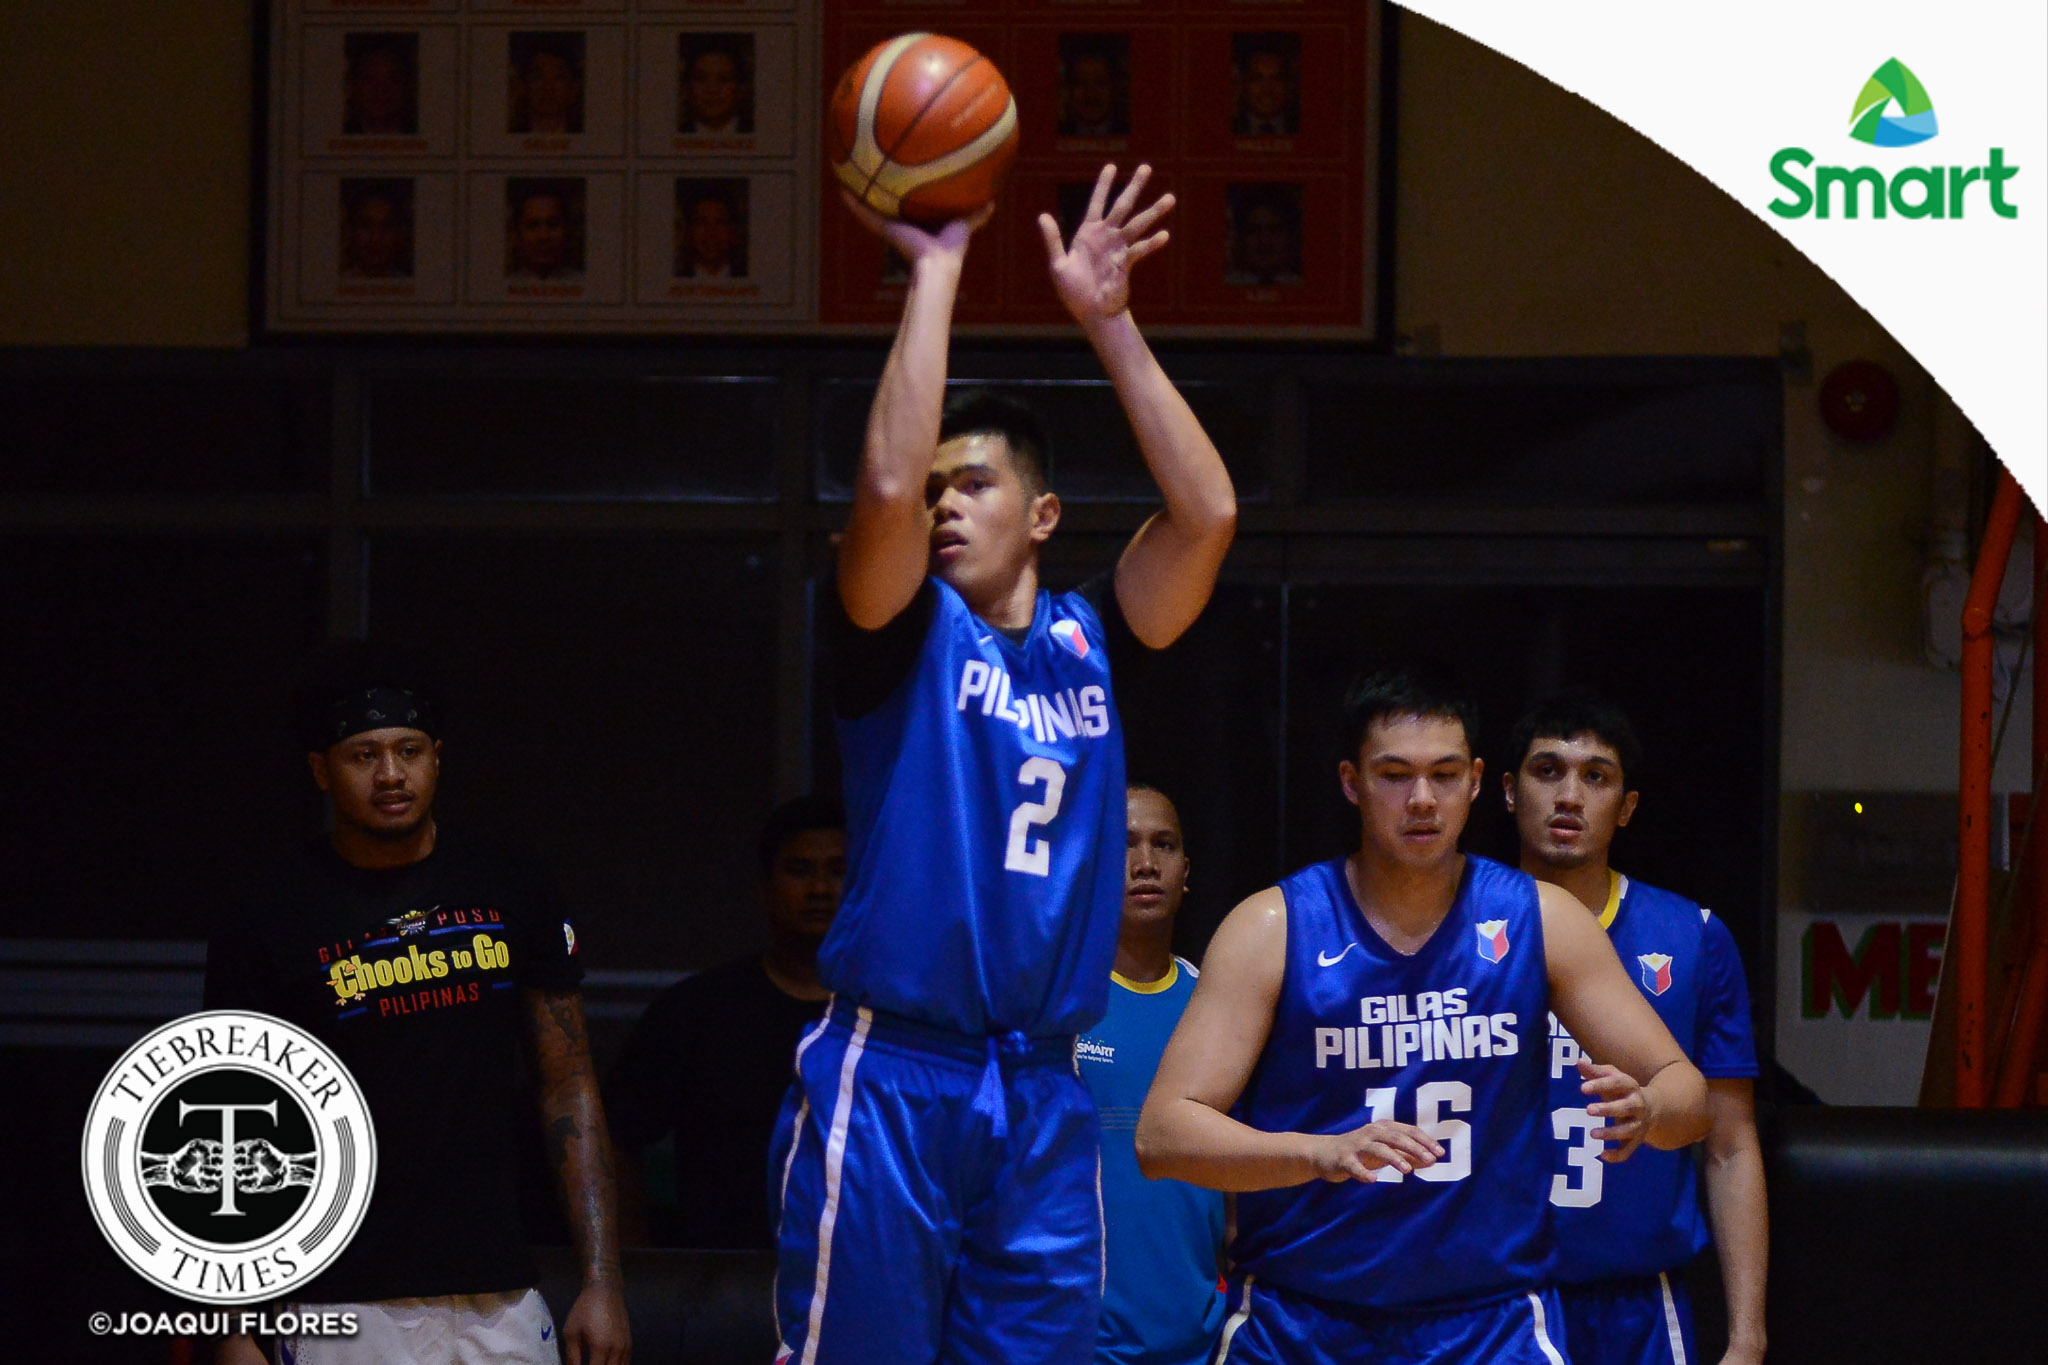 Philippine Sports News - Tiebreaker Times 60 seconds with SMART Gilas Pilipinas' Carl Cruz 2019 FIBA World Cup Qualifiers Basketball Gilas Pilipinas News  Carl Cruz 2019 FIBA World Cup Qualifiers Group B